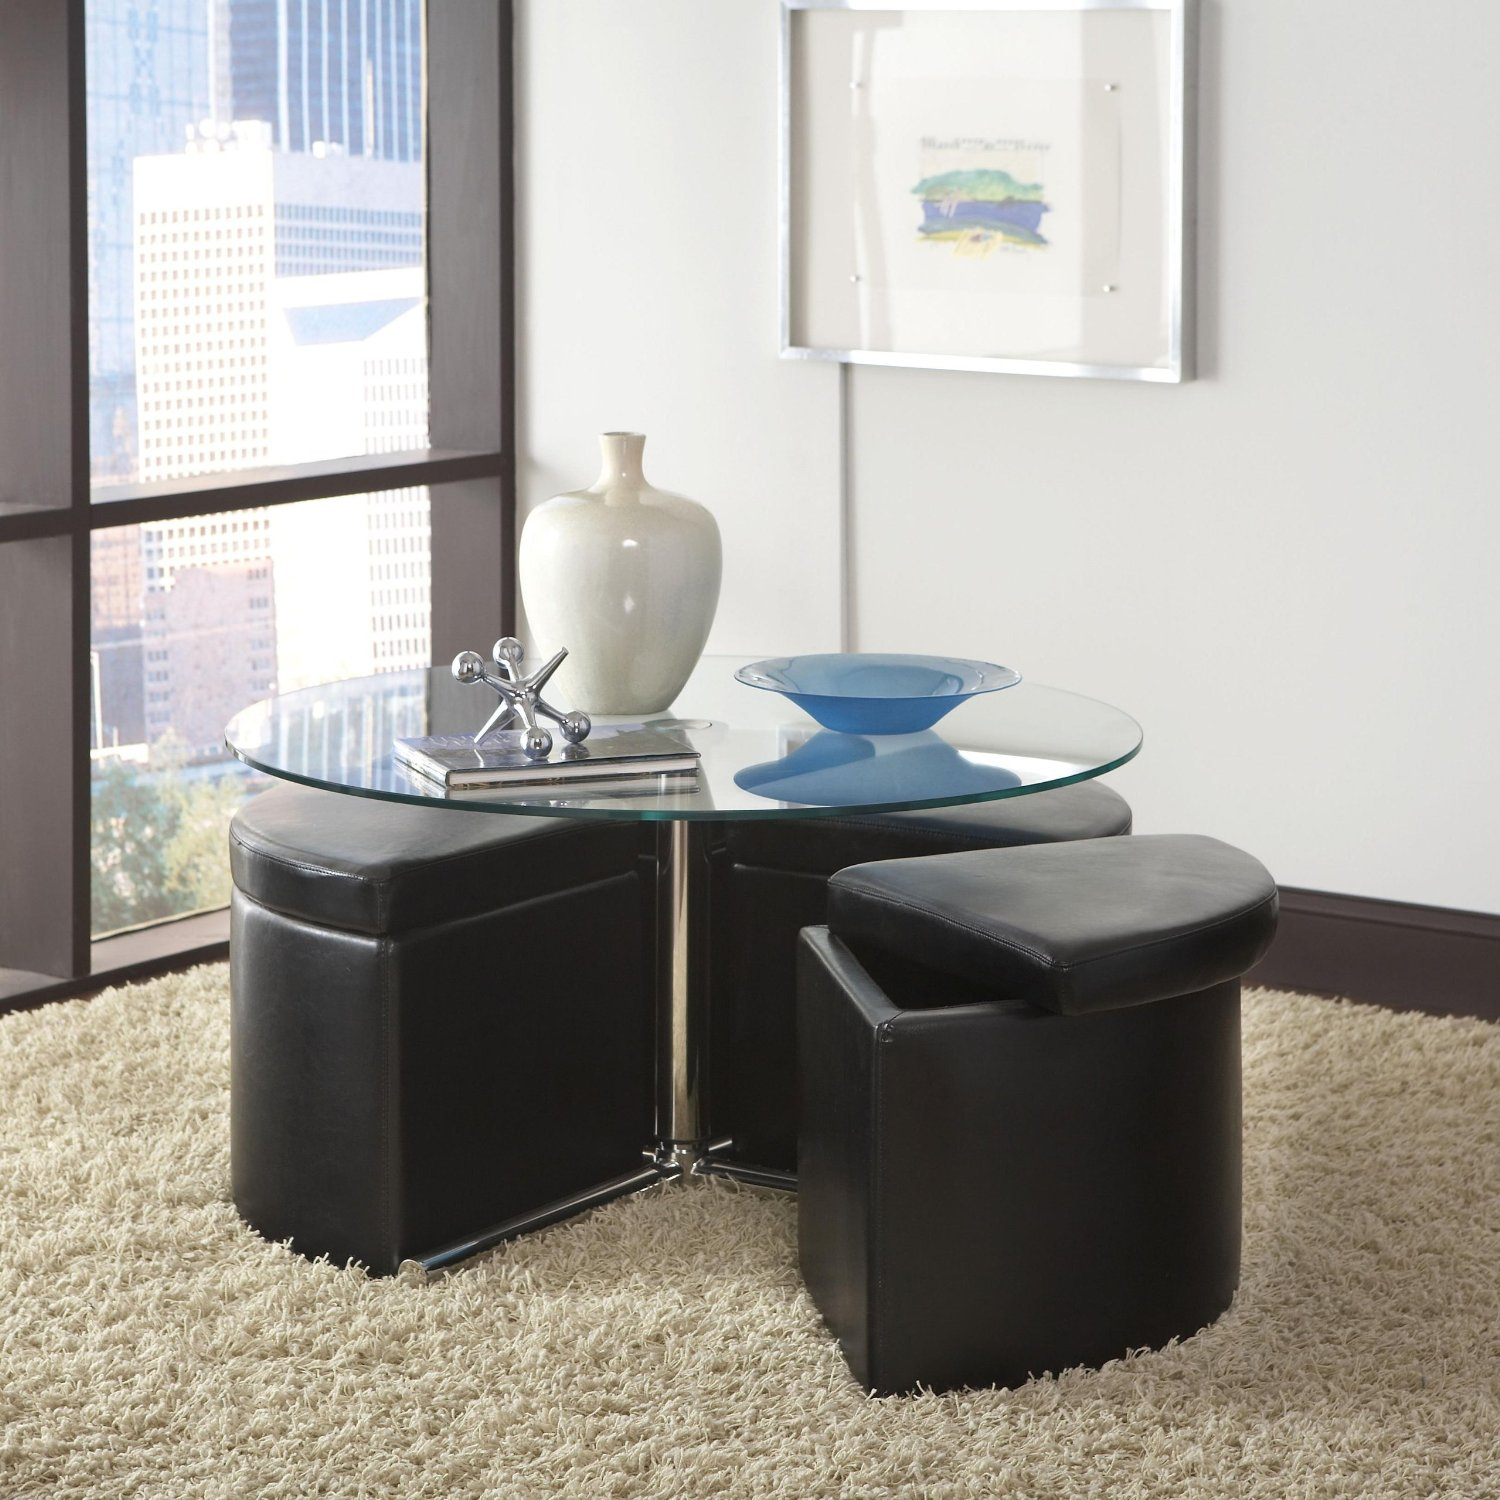 Round Glass Top Coffee Table With Storage Ottoman Seating Underneath